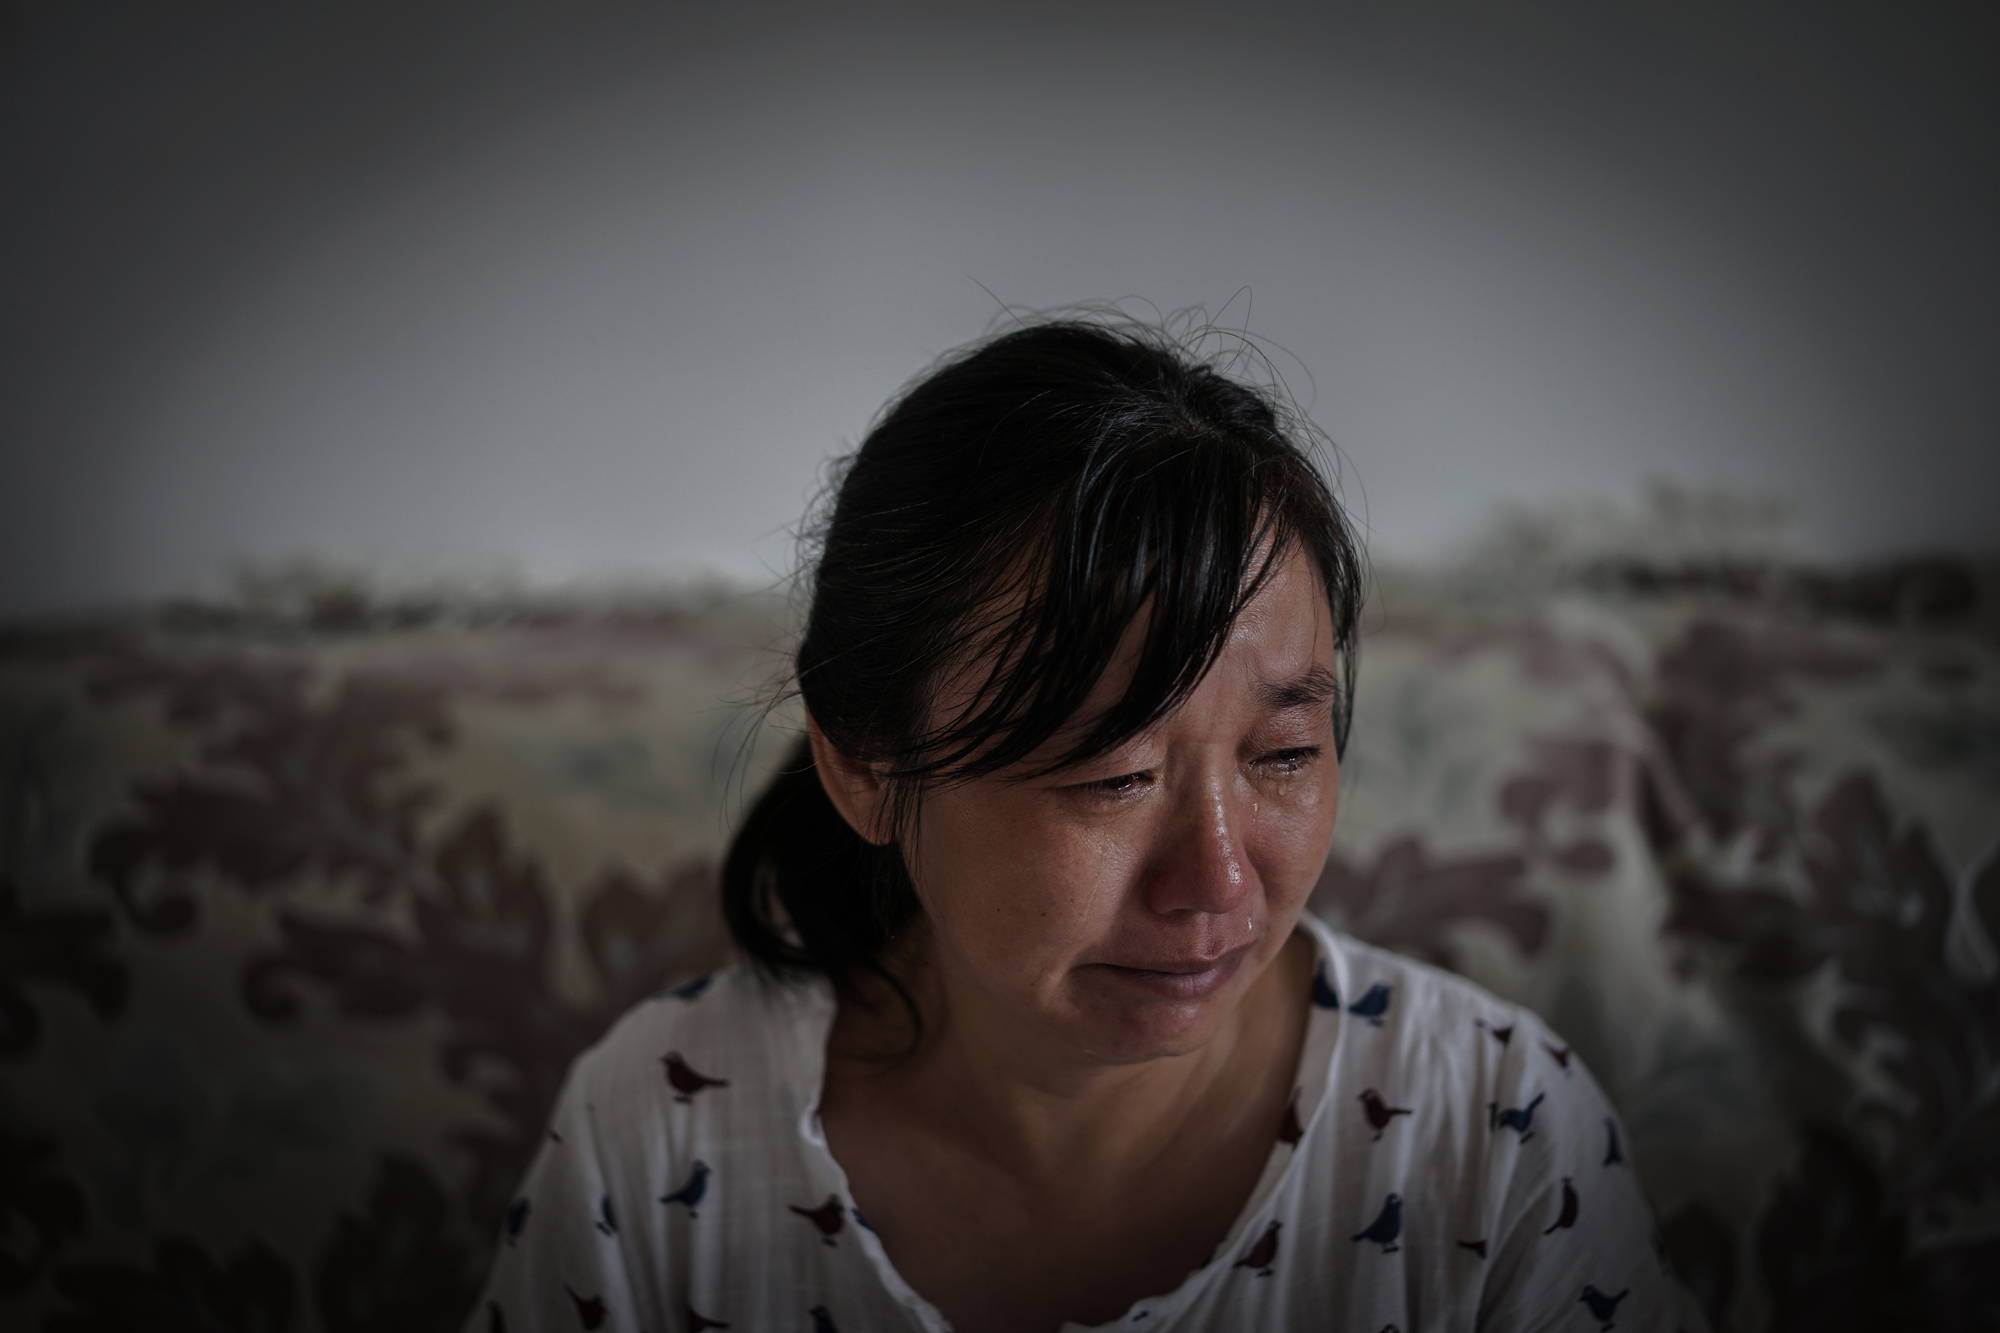 The anniversary of Ti's death is one of the most difficult times for his family.  Ti's mother, Fang Zhiying, talks about her son through tears at home in Suizhou, August 9, 2017.